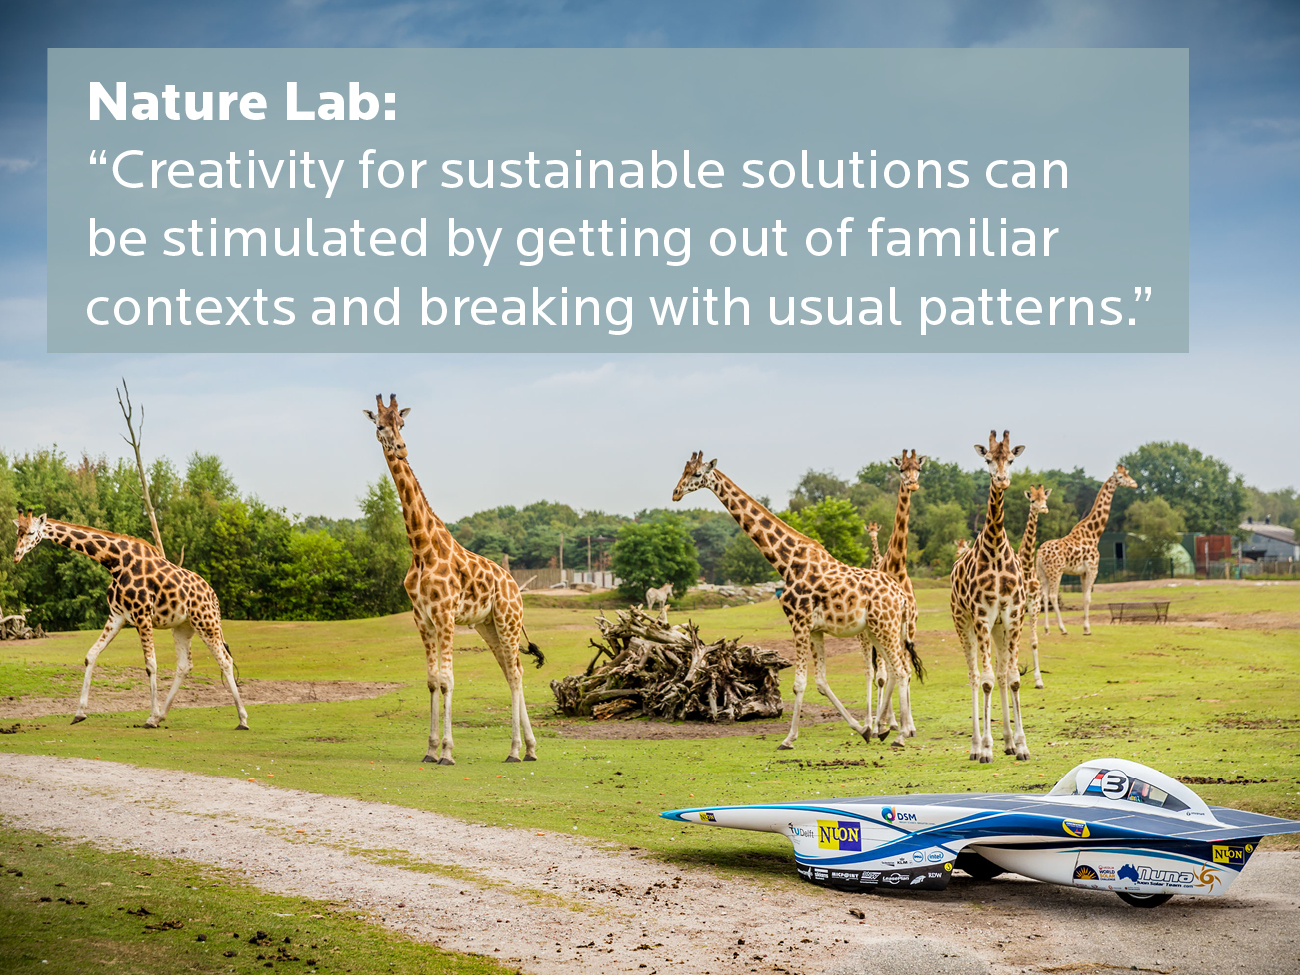 Nature Lab - Go out and explore your creativity - Rainbow